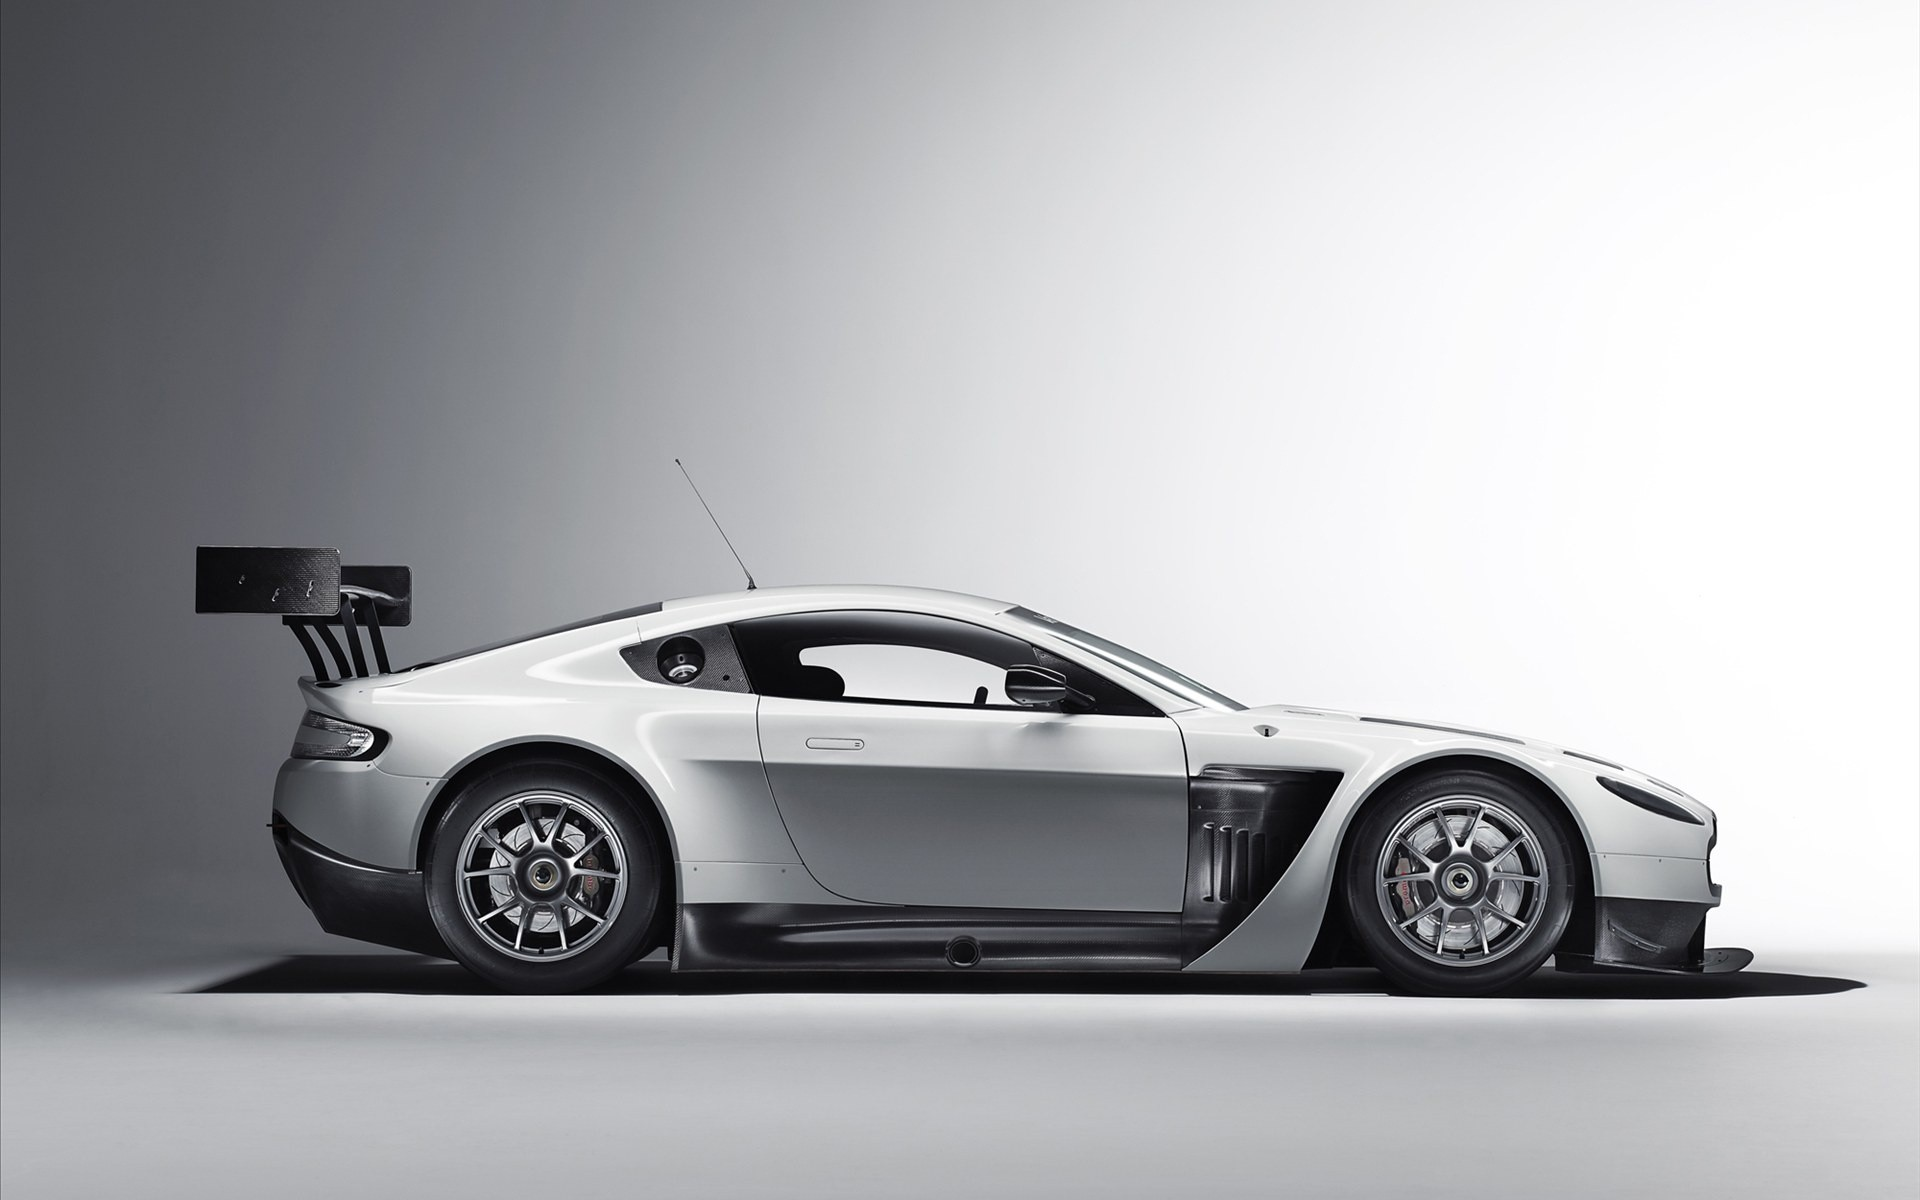 Daily Wallpaper: Aston Martin Vantage GT3 | I Like To Waste My Time